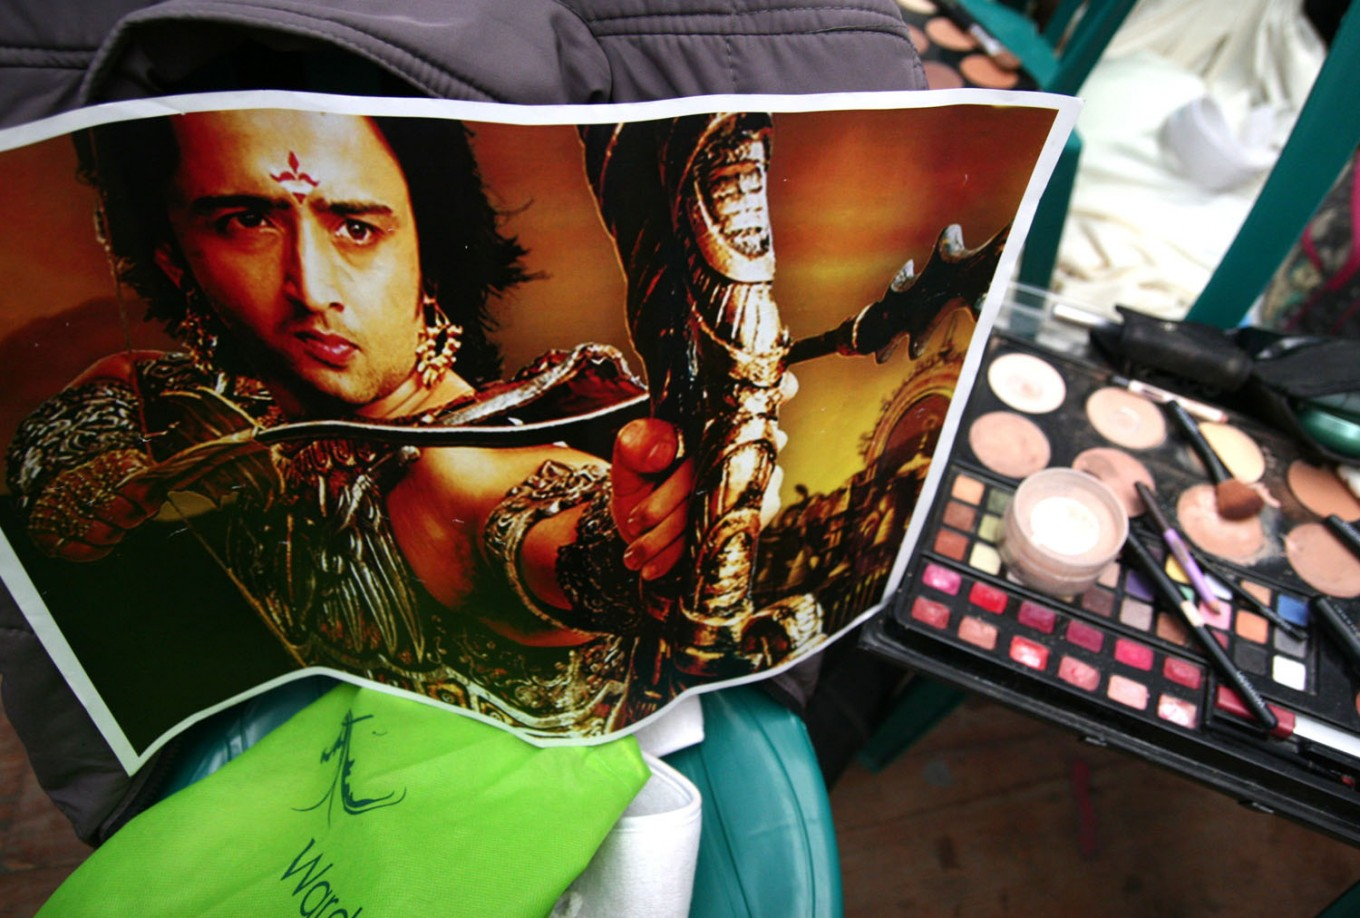 A Mahabarata movie poster is visible in the makeup room of the Gajayana Playhouse in Malang, East Java. JP/Aman Rochman